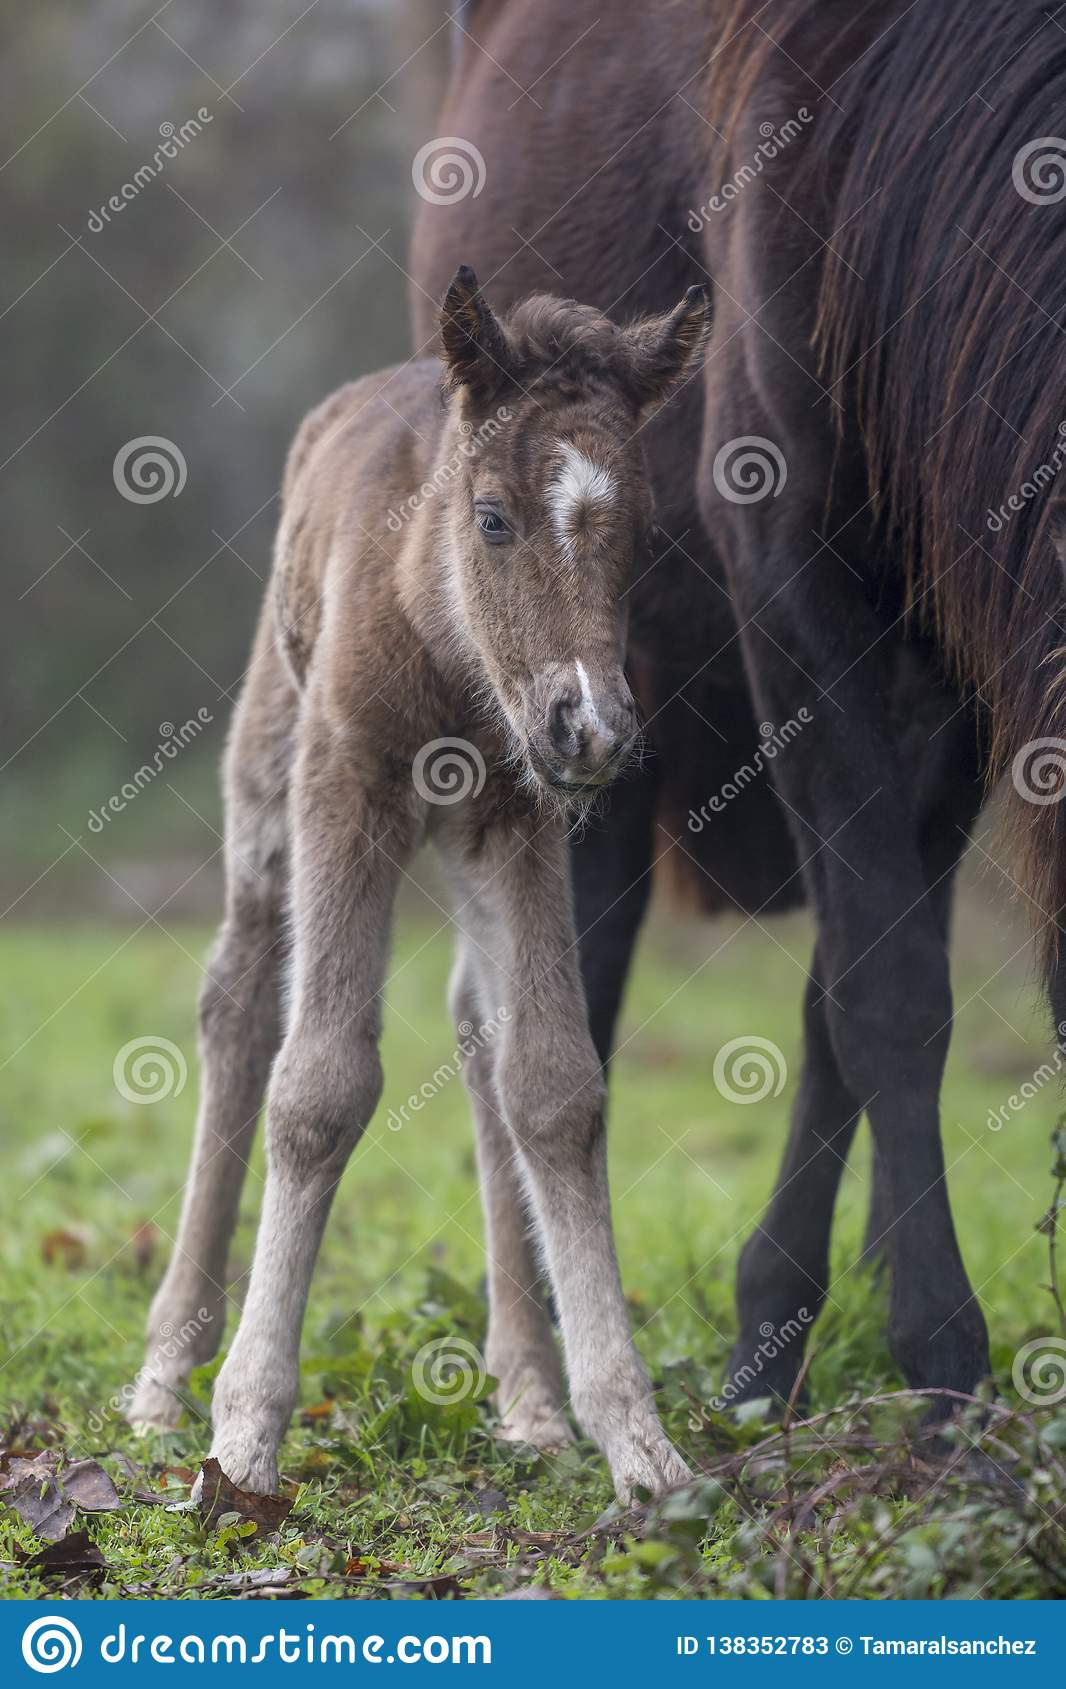 Newborn foal with its mother